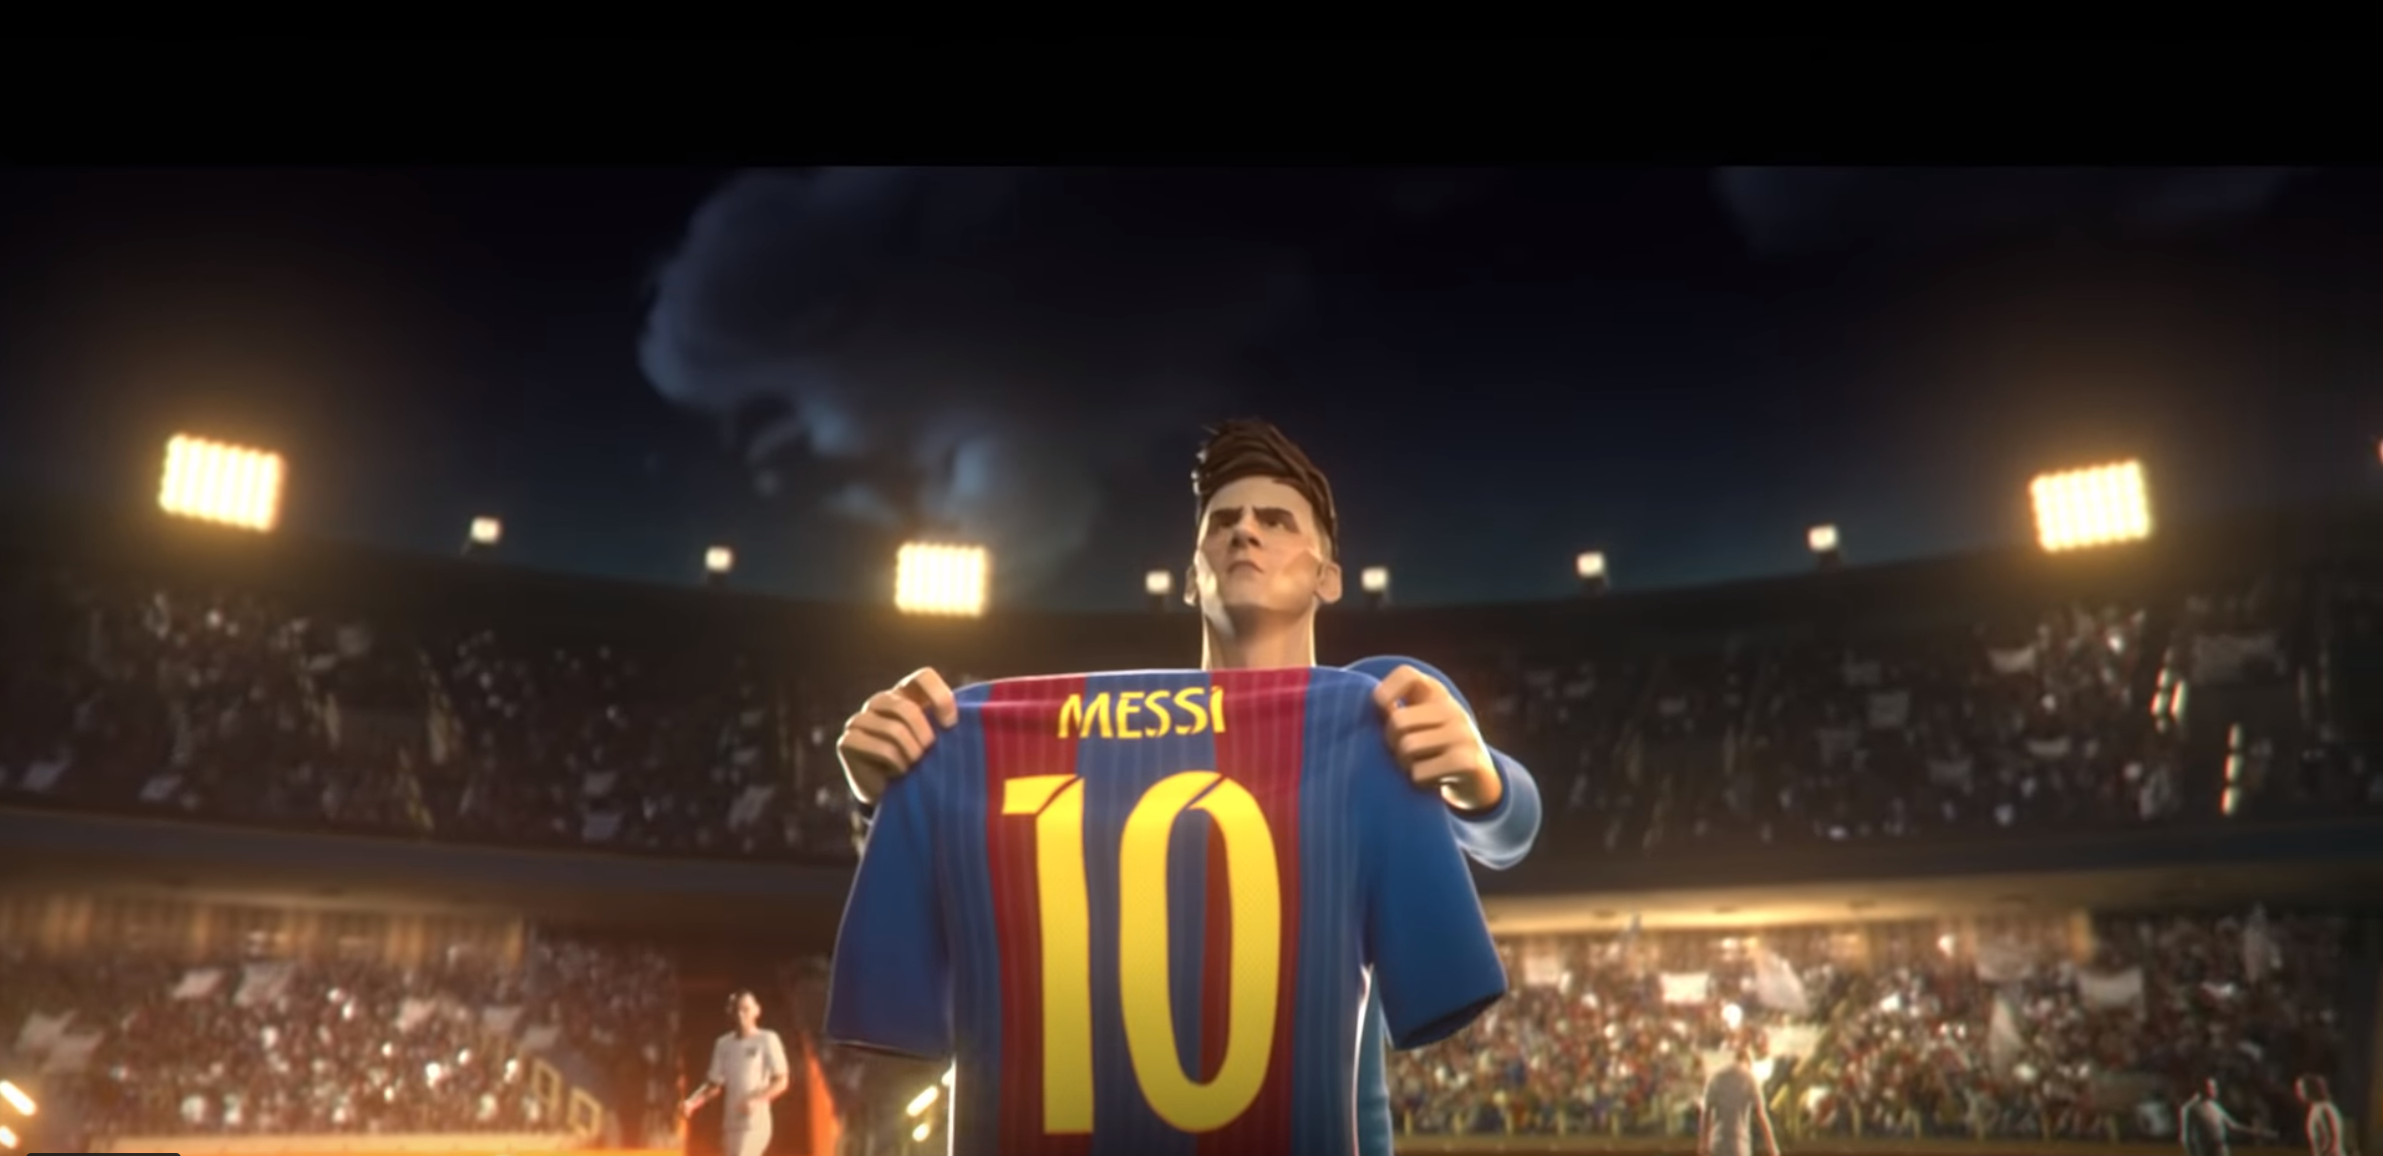 Messi video.PNG